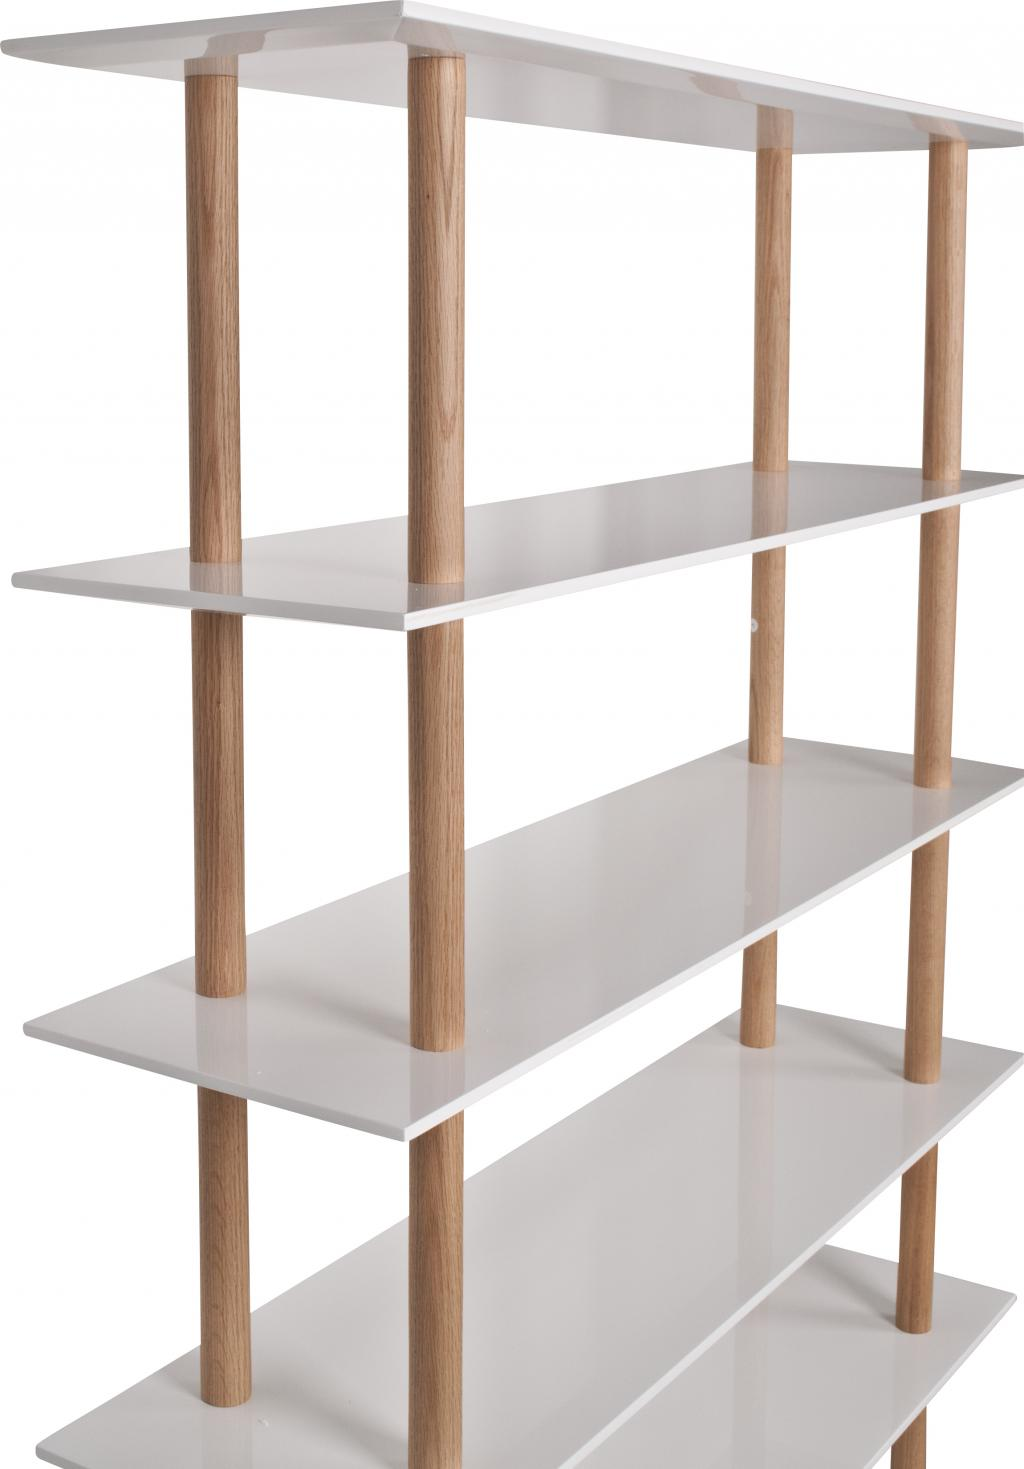 https://cdn.zilvercms.nl/http://designwonen.zilvercdn.nl/upload/238/products/25130/zuiver-boekenkast-high-on-wood-hoogglans[1].jpg